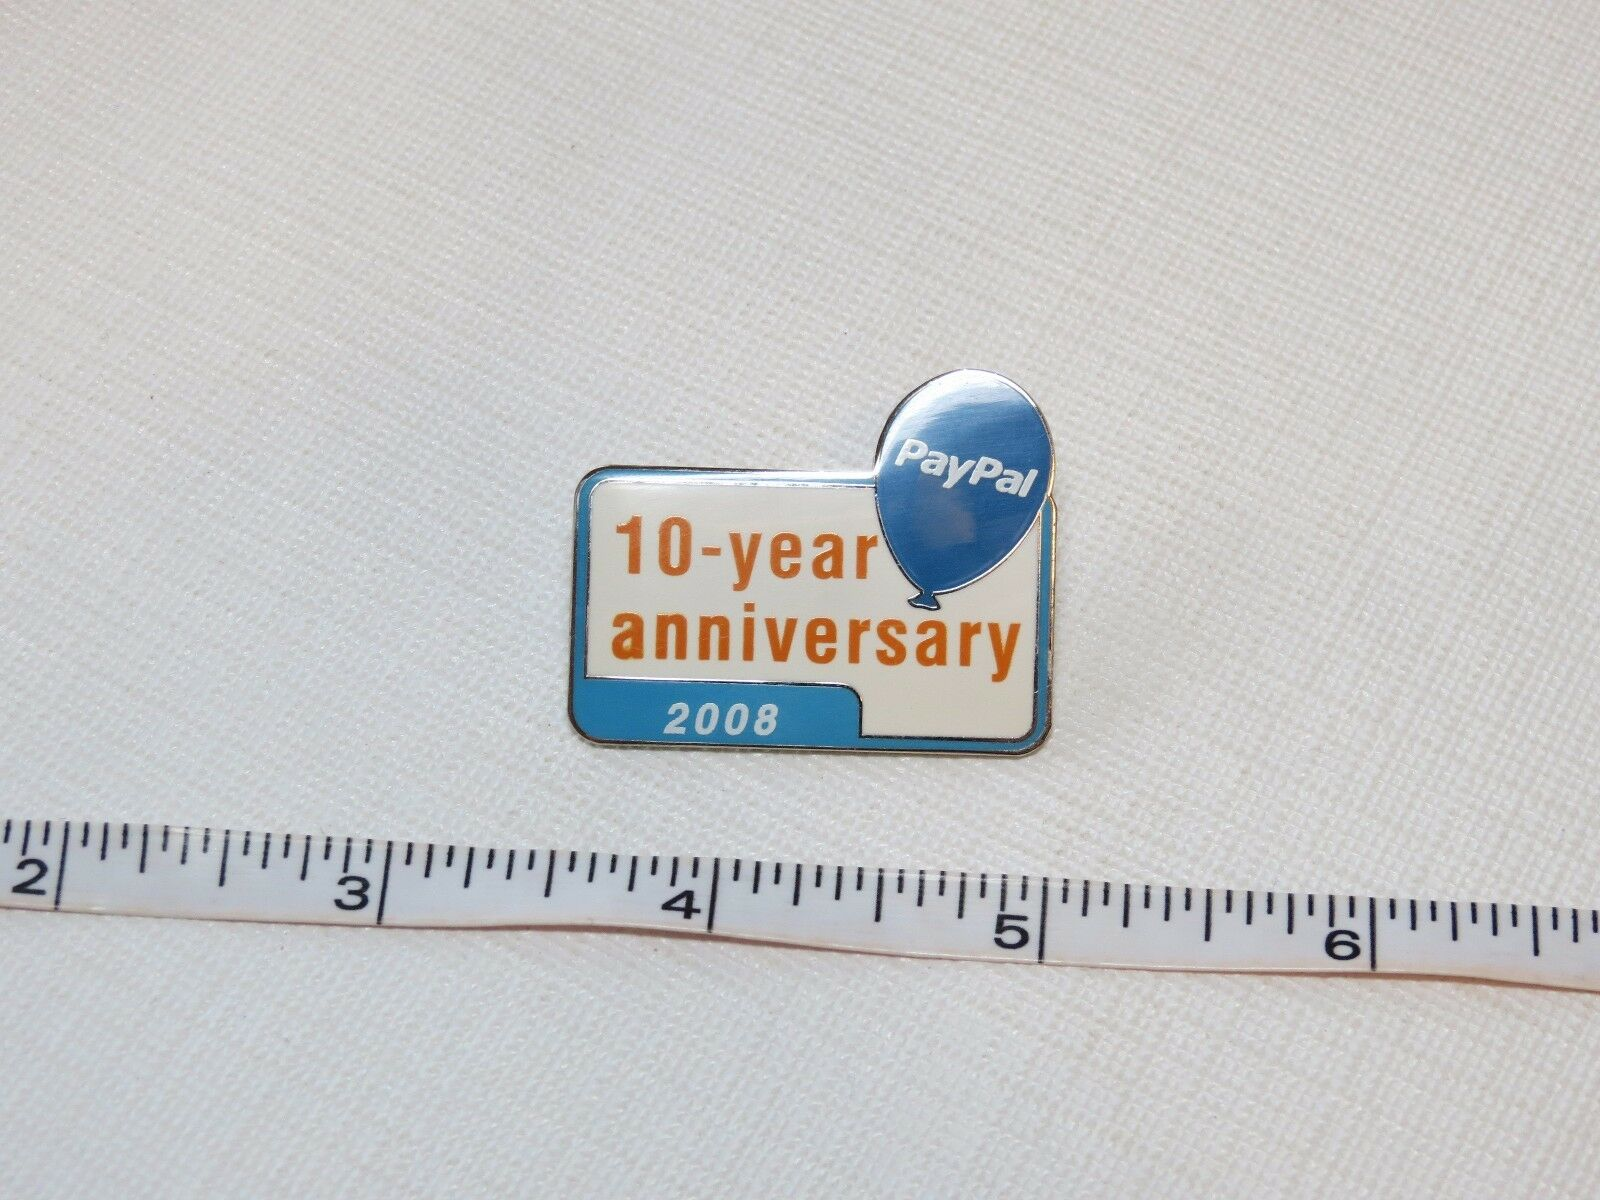 paypal pin 10 year anniversary 2008 pp rare collectible. Black Bedroom Furniture Sets. Home Design Ideas